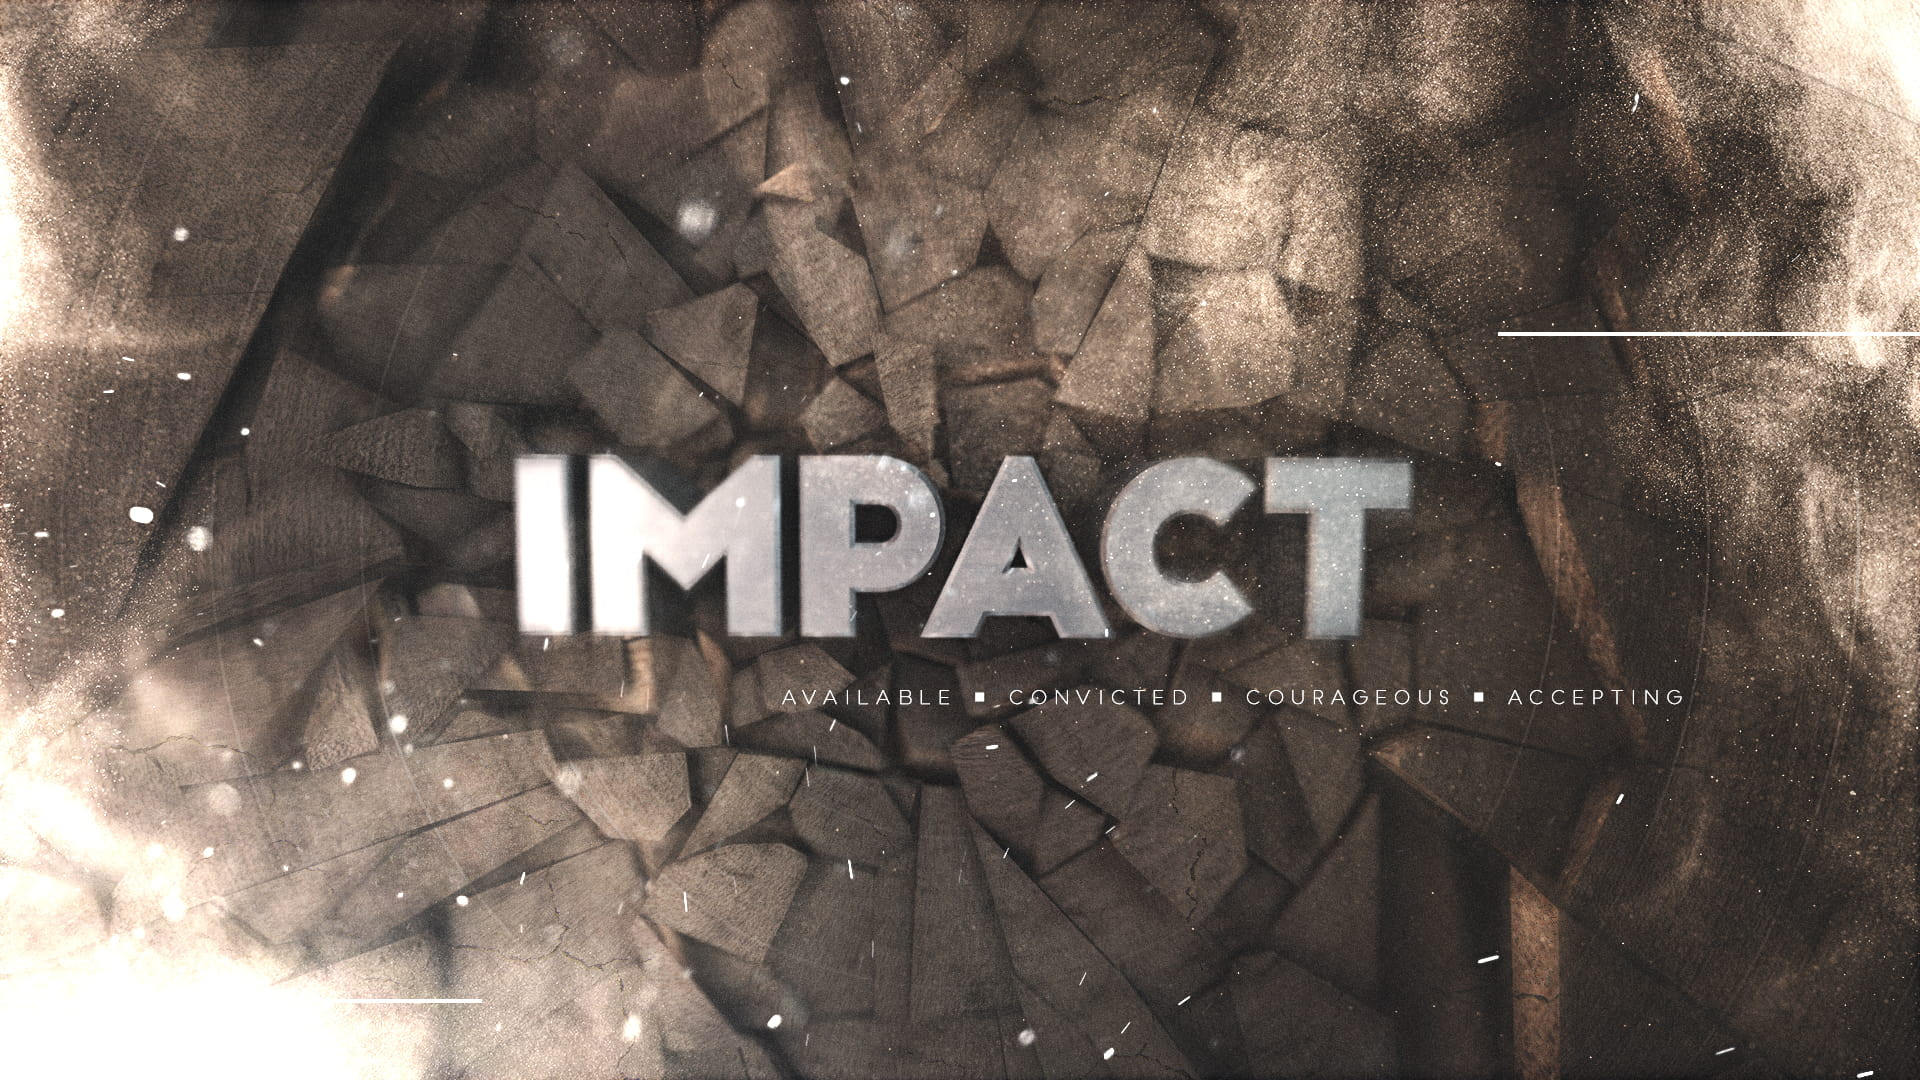 Watch Impact - Be Available